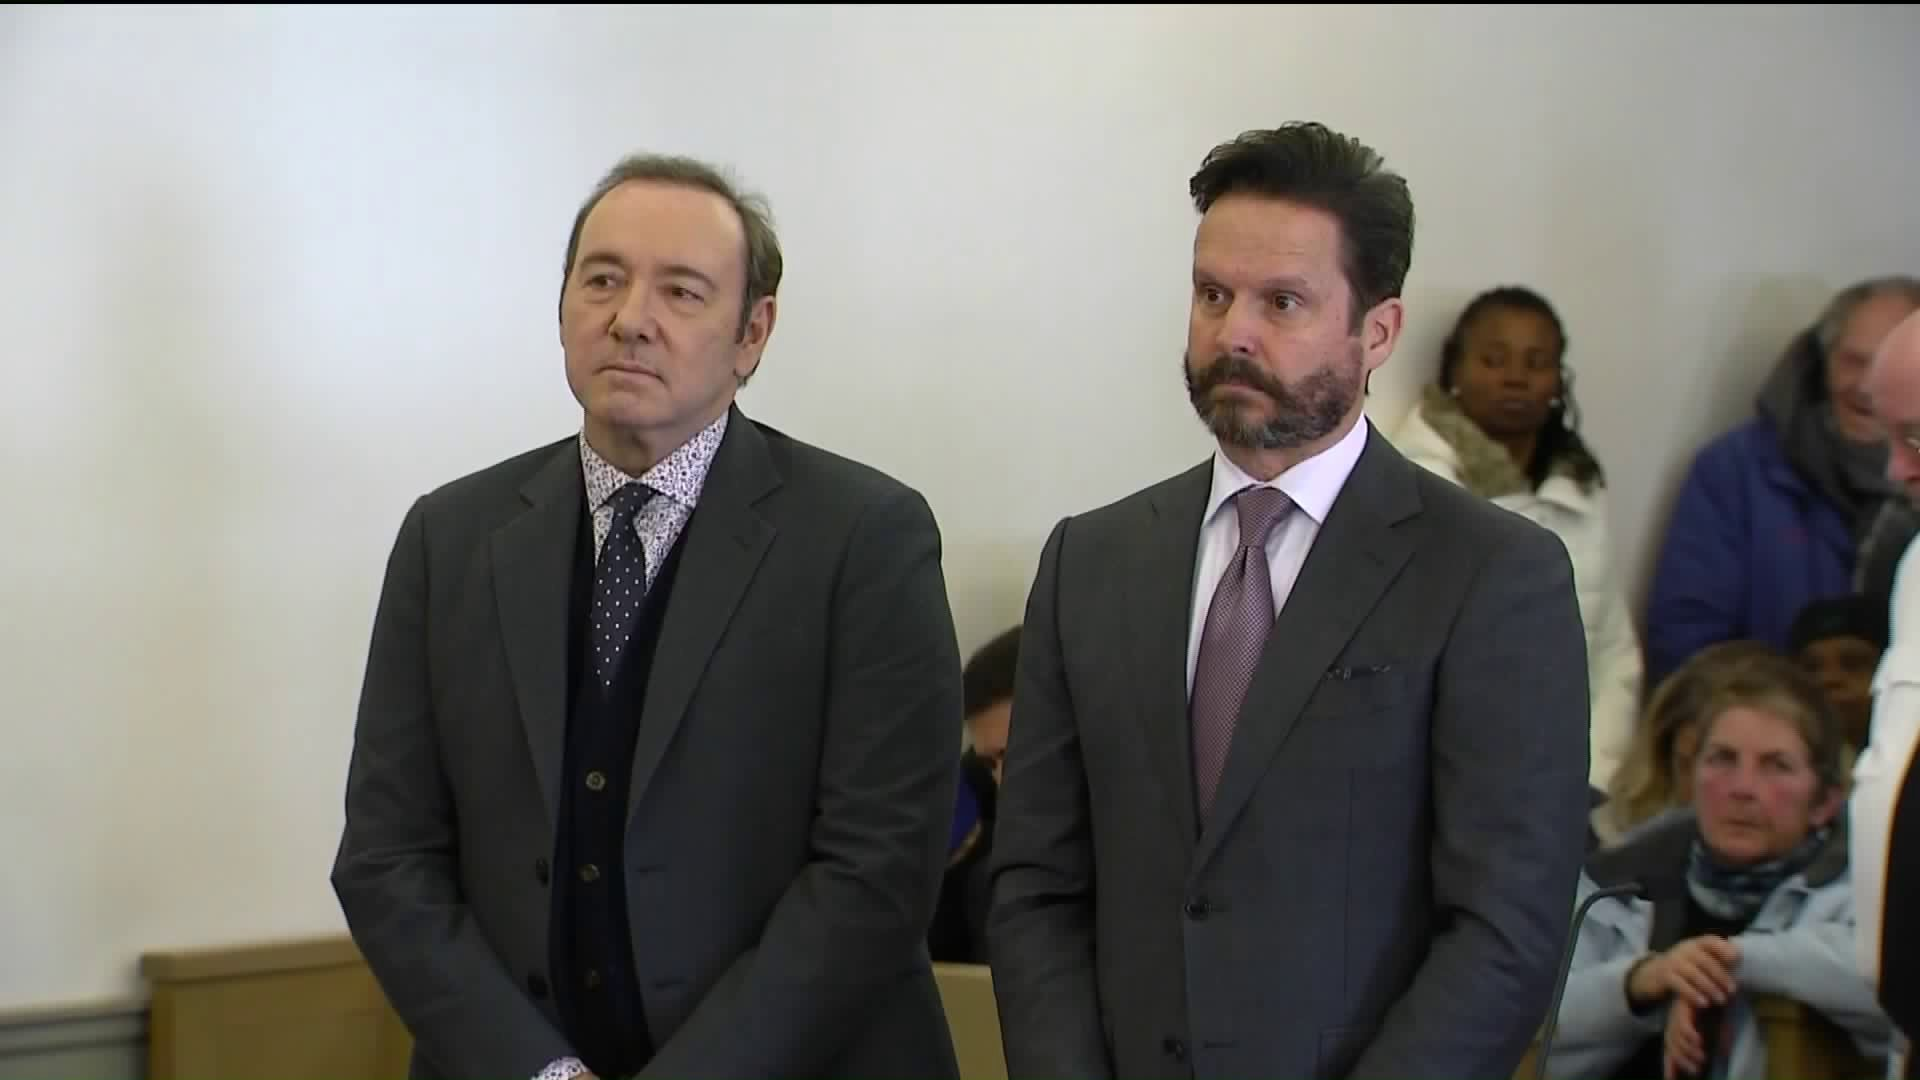 Kevin Spacey appears in a Massachusetts court on Jan. 7, 2019, to answer accusations he groped a young man in 2016. (Credit: CNN)